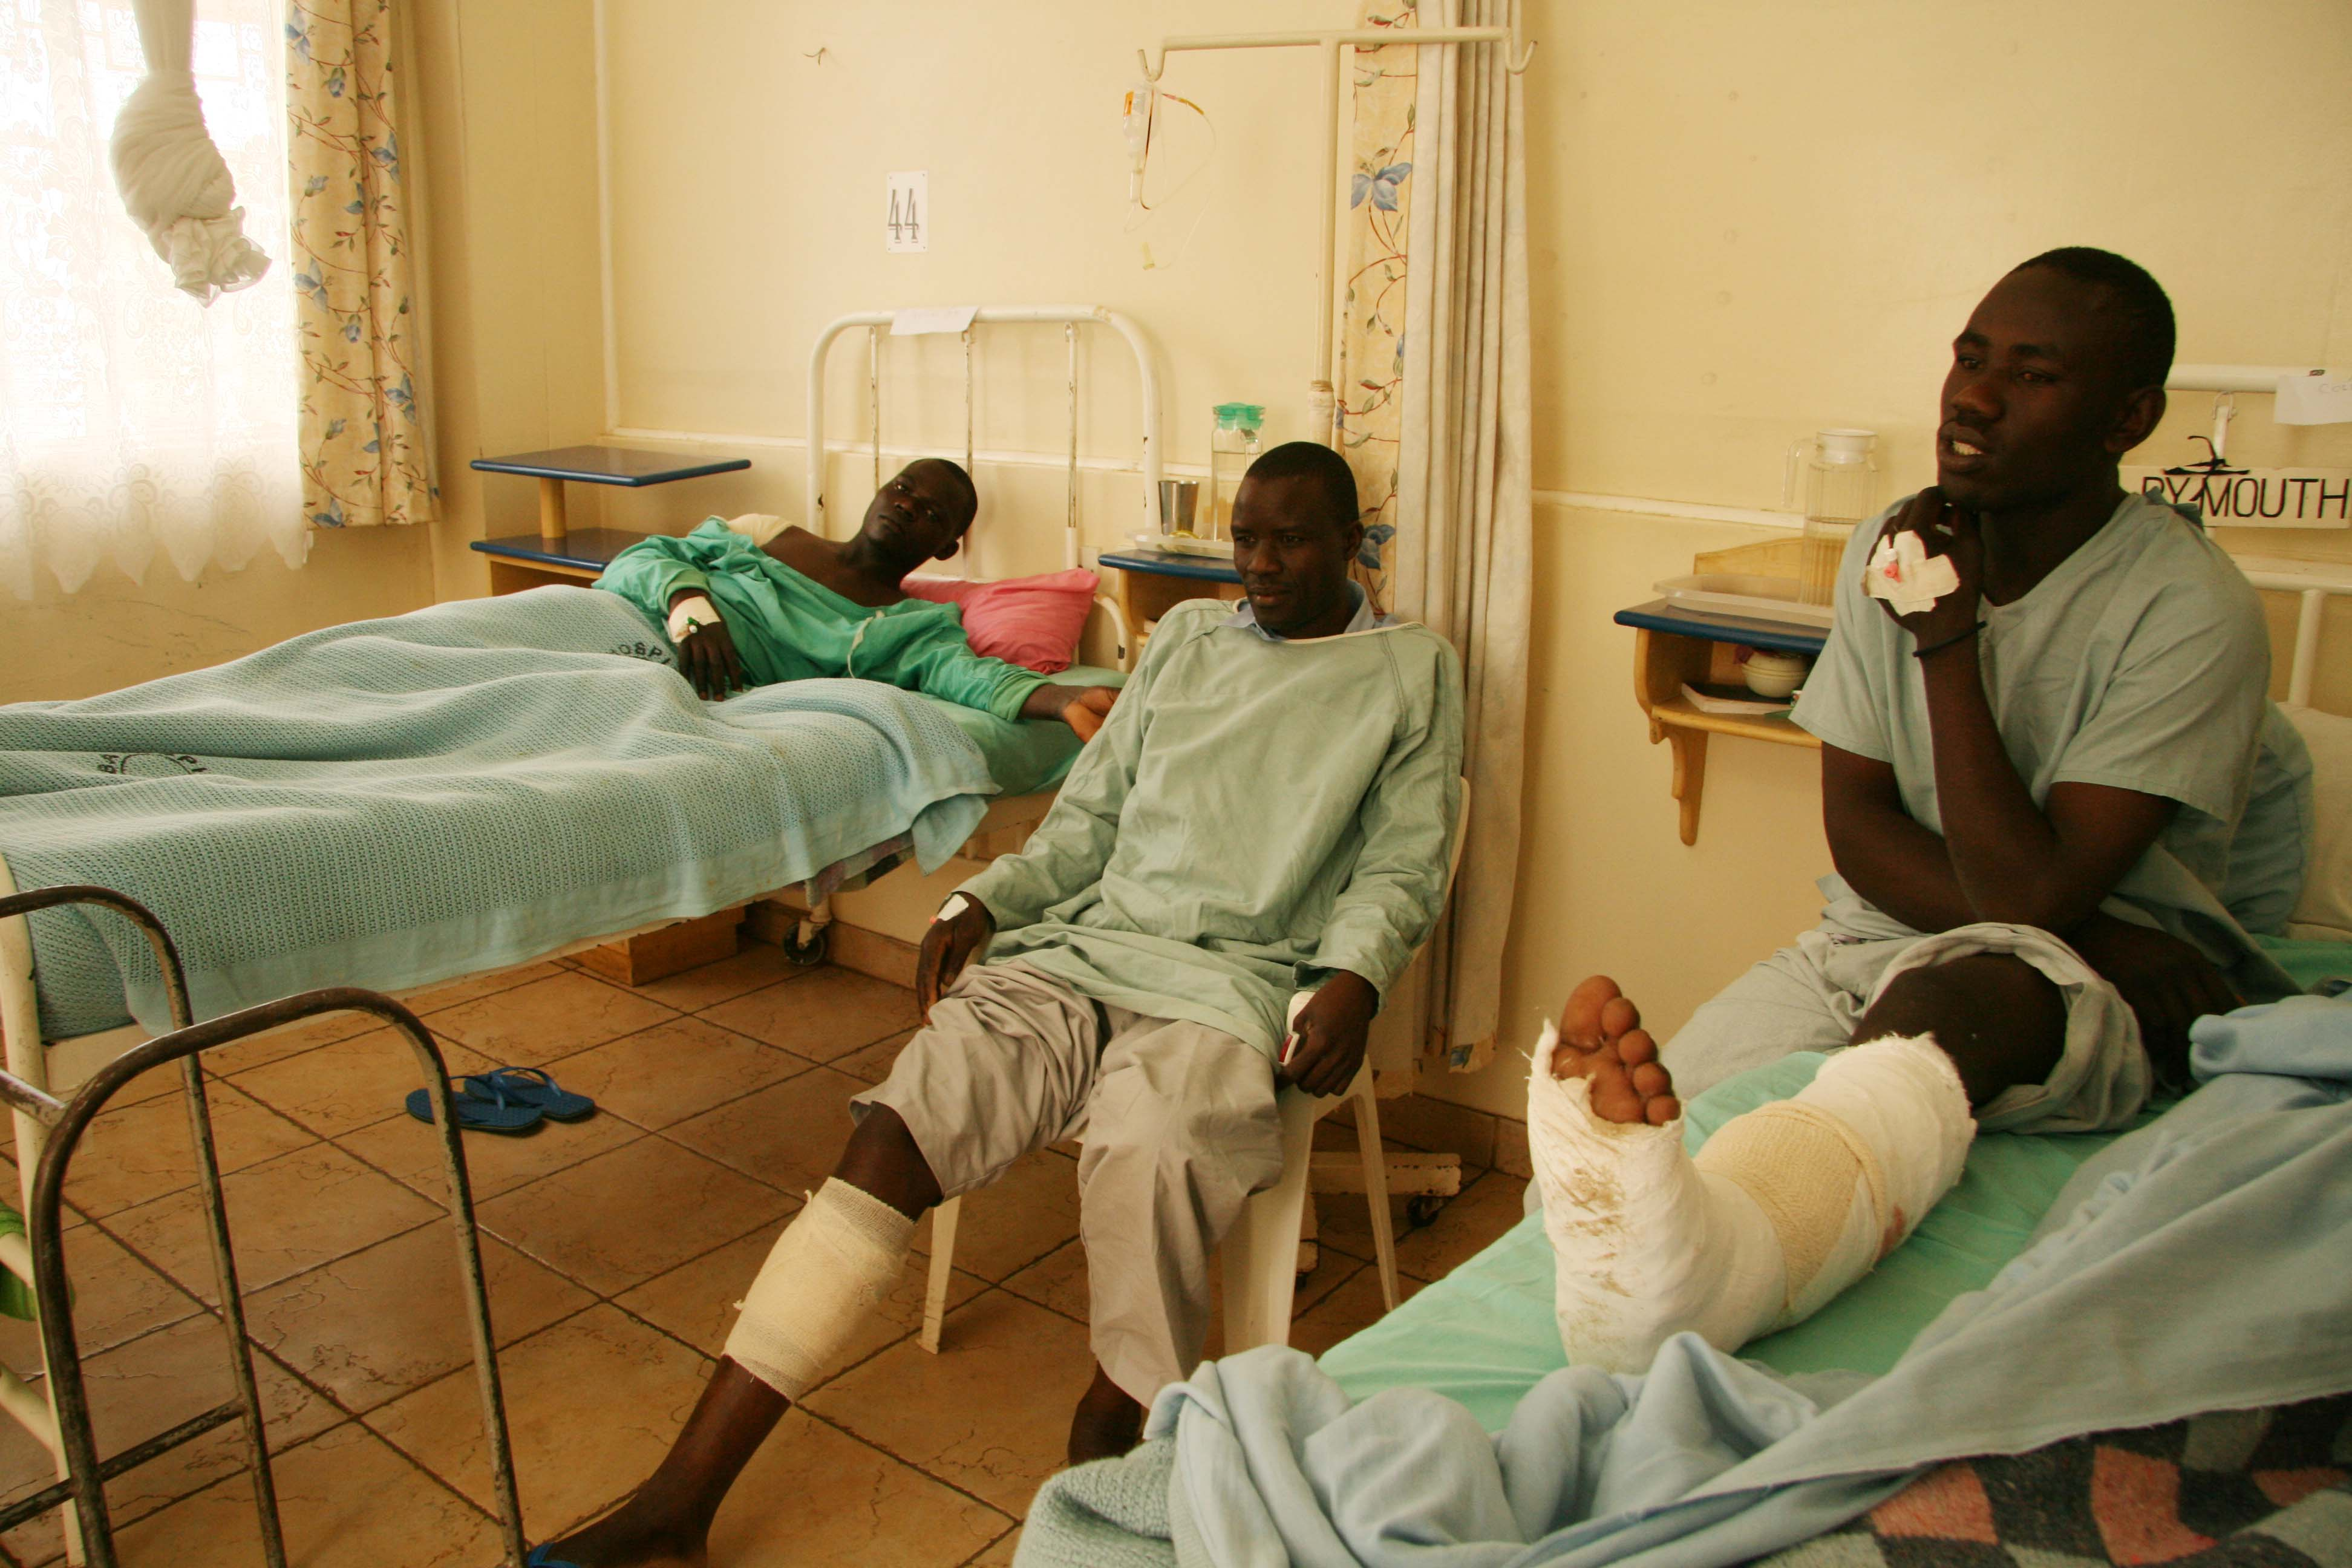 Victims of the post election skirmishes nurse their wounds at the Masaba hospital, Nairobi, Kenya. January 2008.